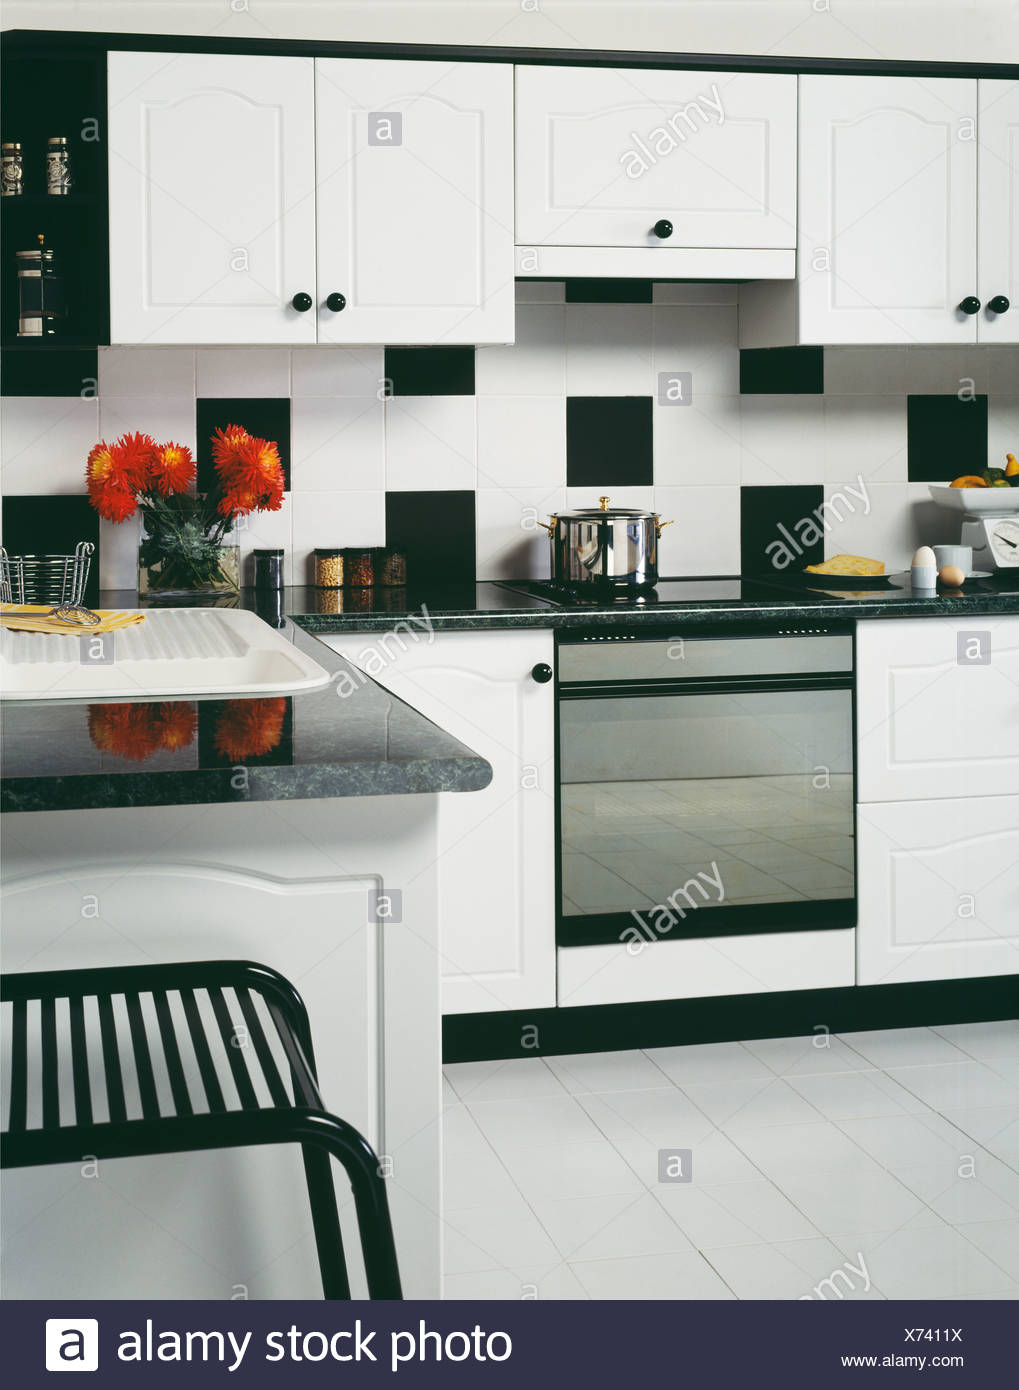 Stainless Steel Oven In Unit Below Wall With Black And White Tiles In Monochromatic Kitchen With Painted White Wooden Flooring Stock Photo Alamy